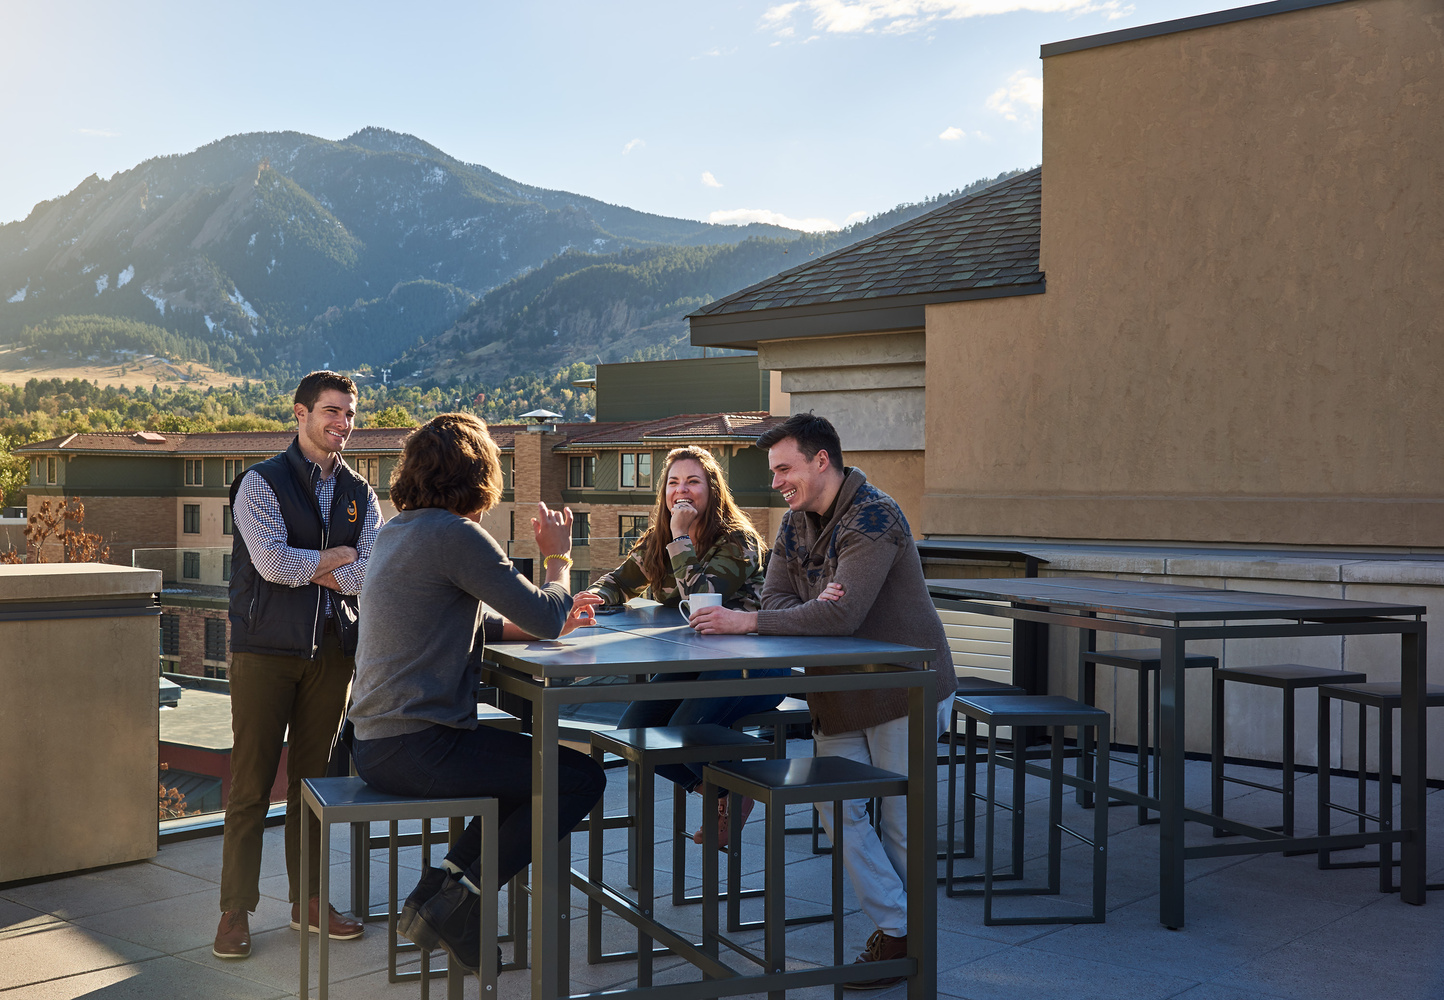 Galvanize | Boulder Campus by Derek Johnson